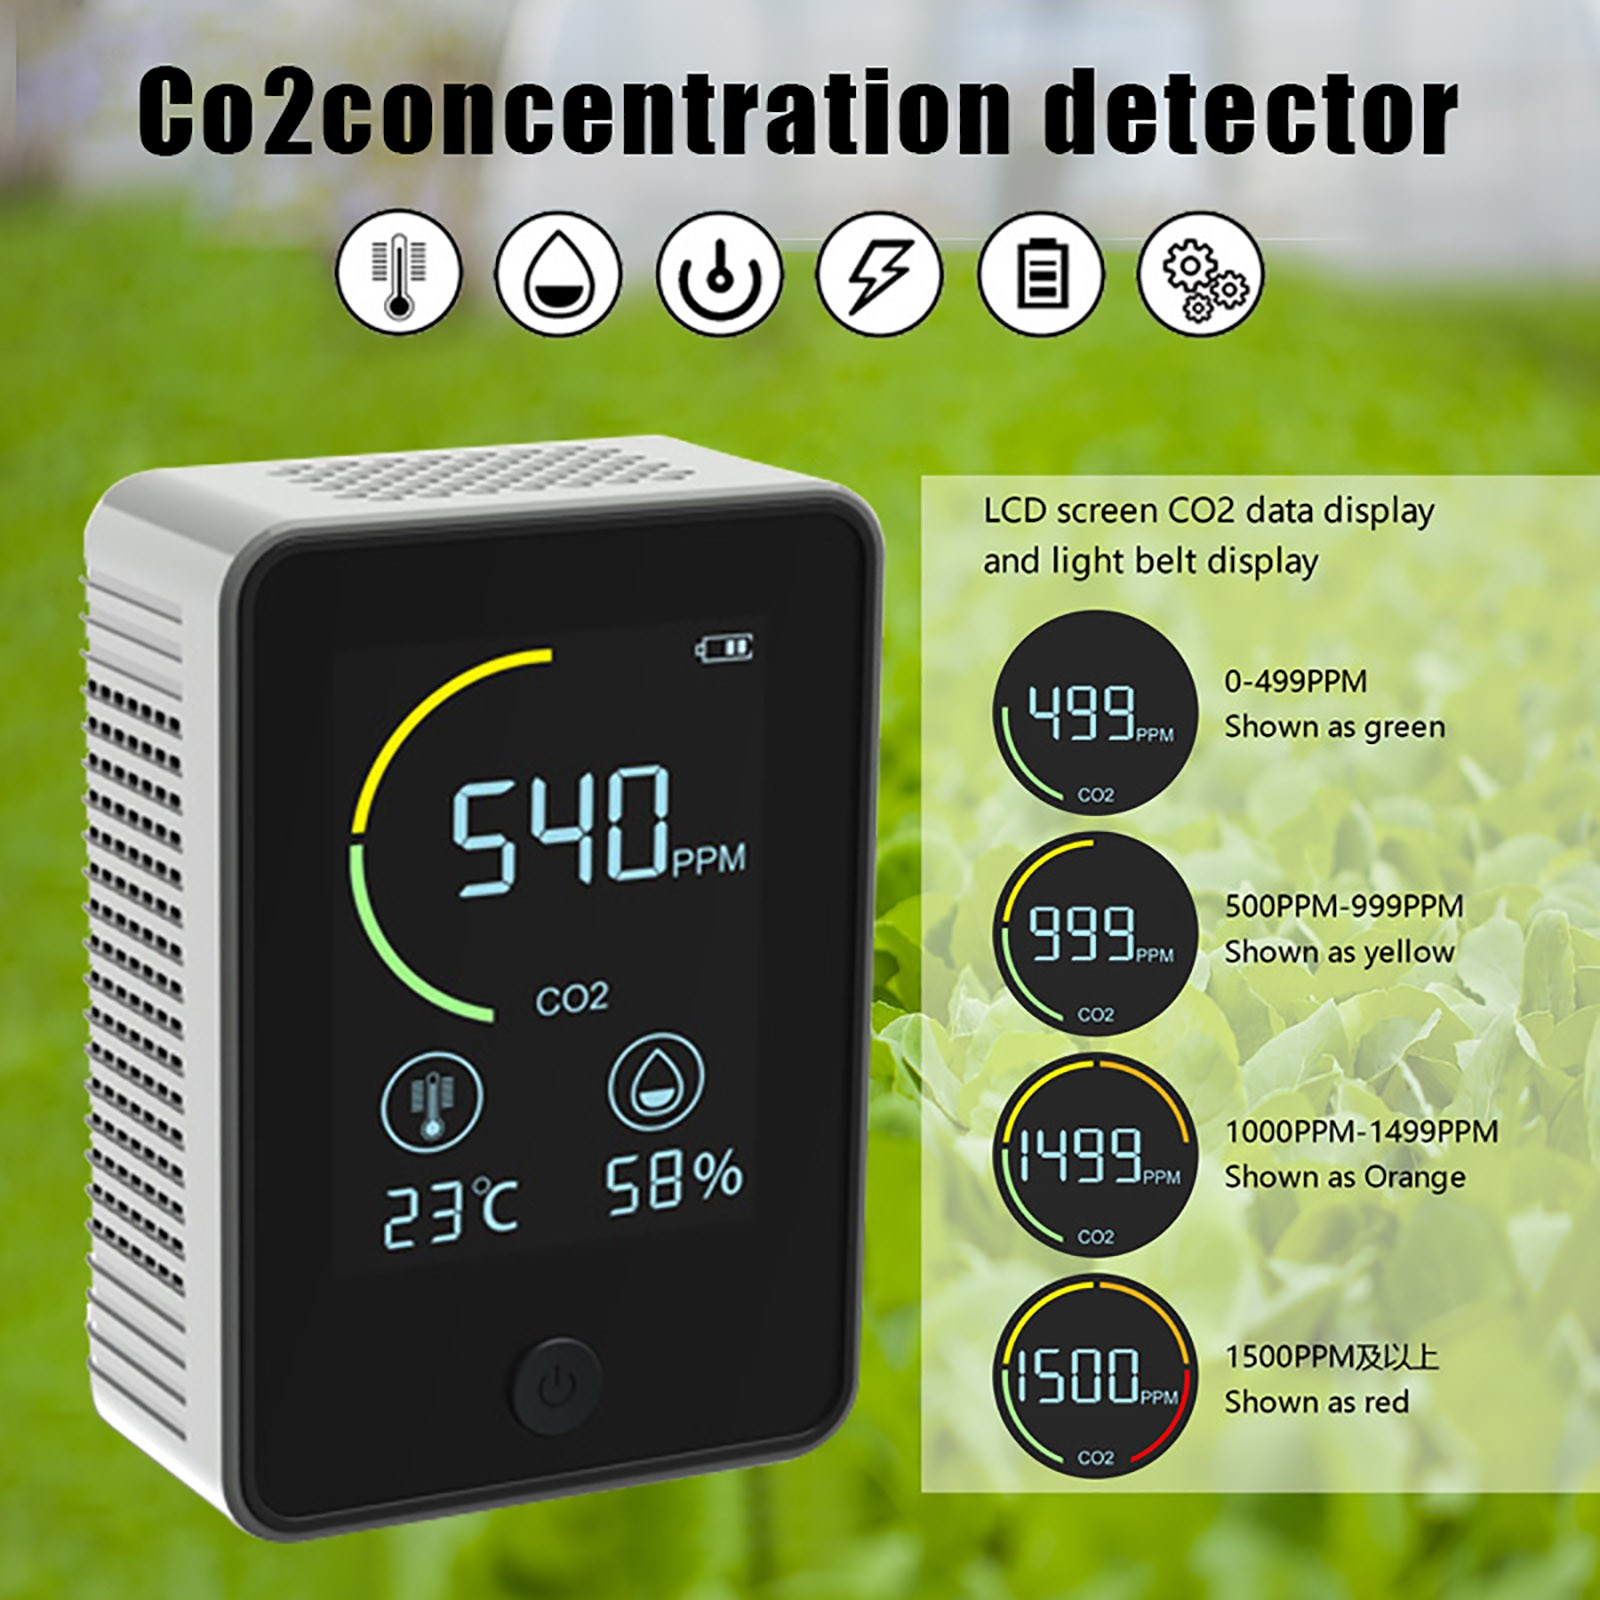 Usb Rechargeable Co2 Meter Air Quality Monitor Carbon Indoor Dioxide Sensor Concentration Detector Lcd Backlight #g